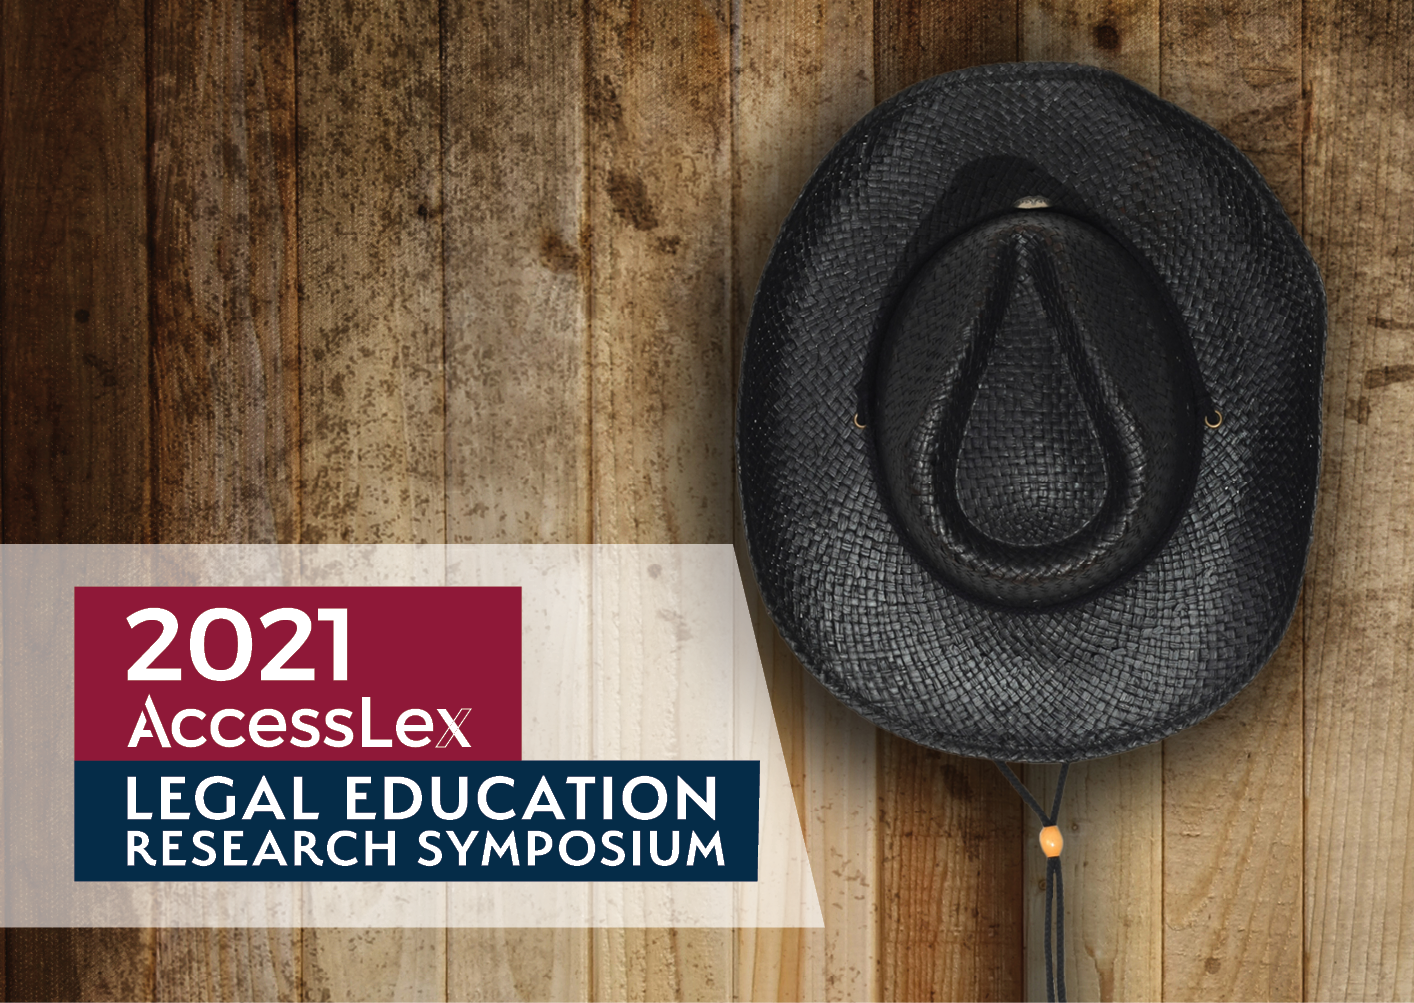 Legal Education Research Symposium '21